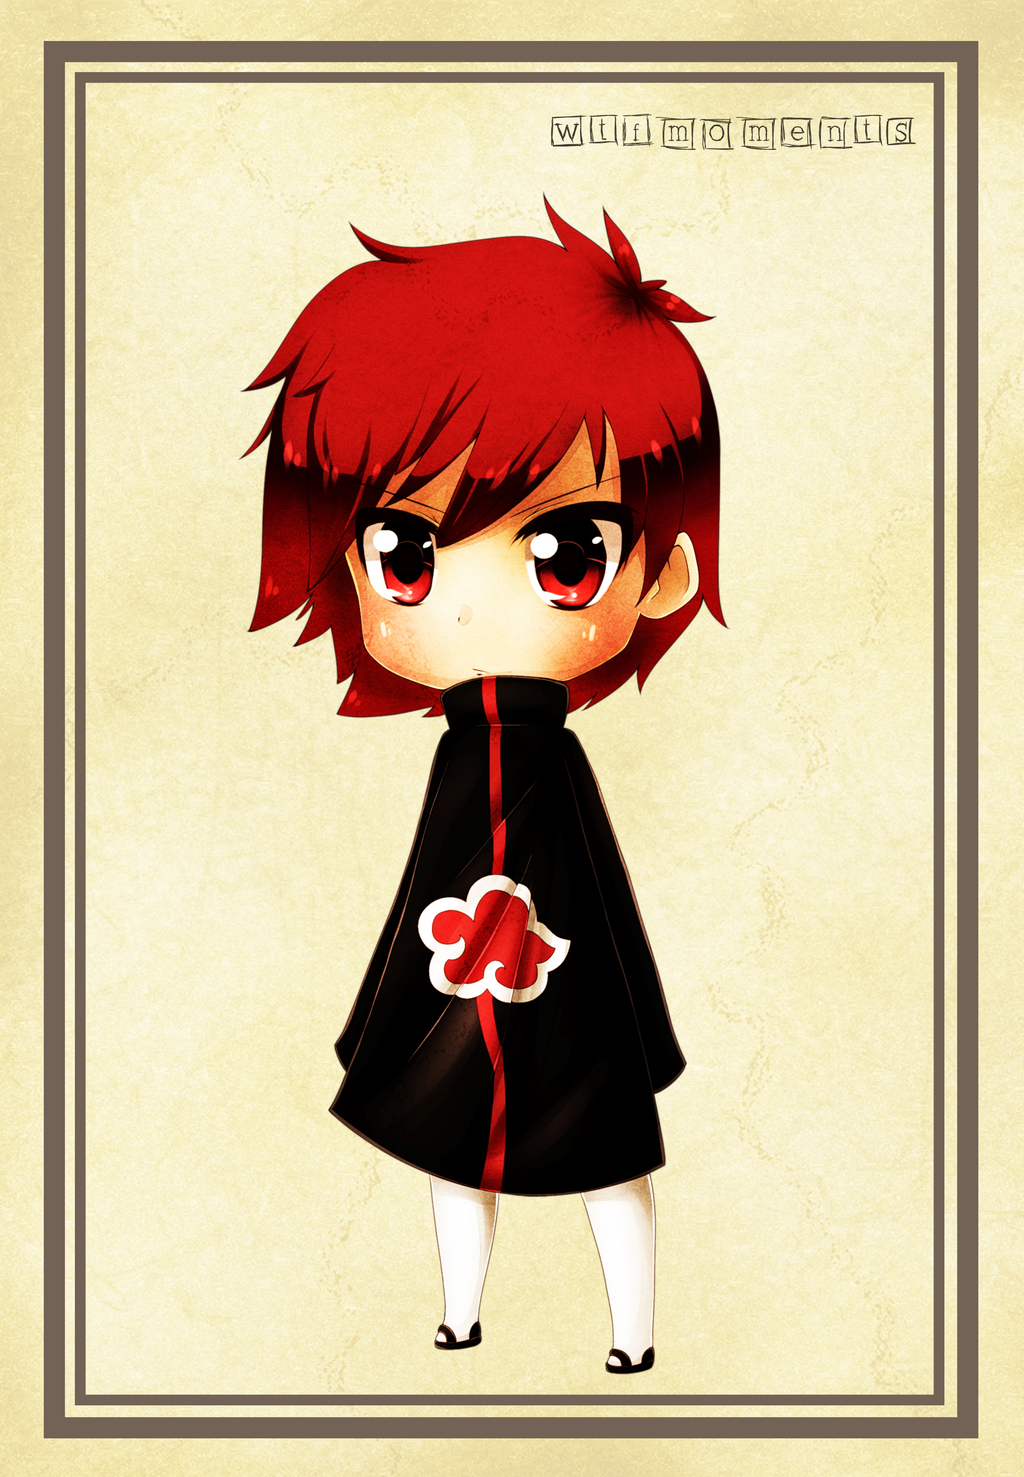 Sasori by WTFmoments